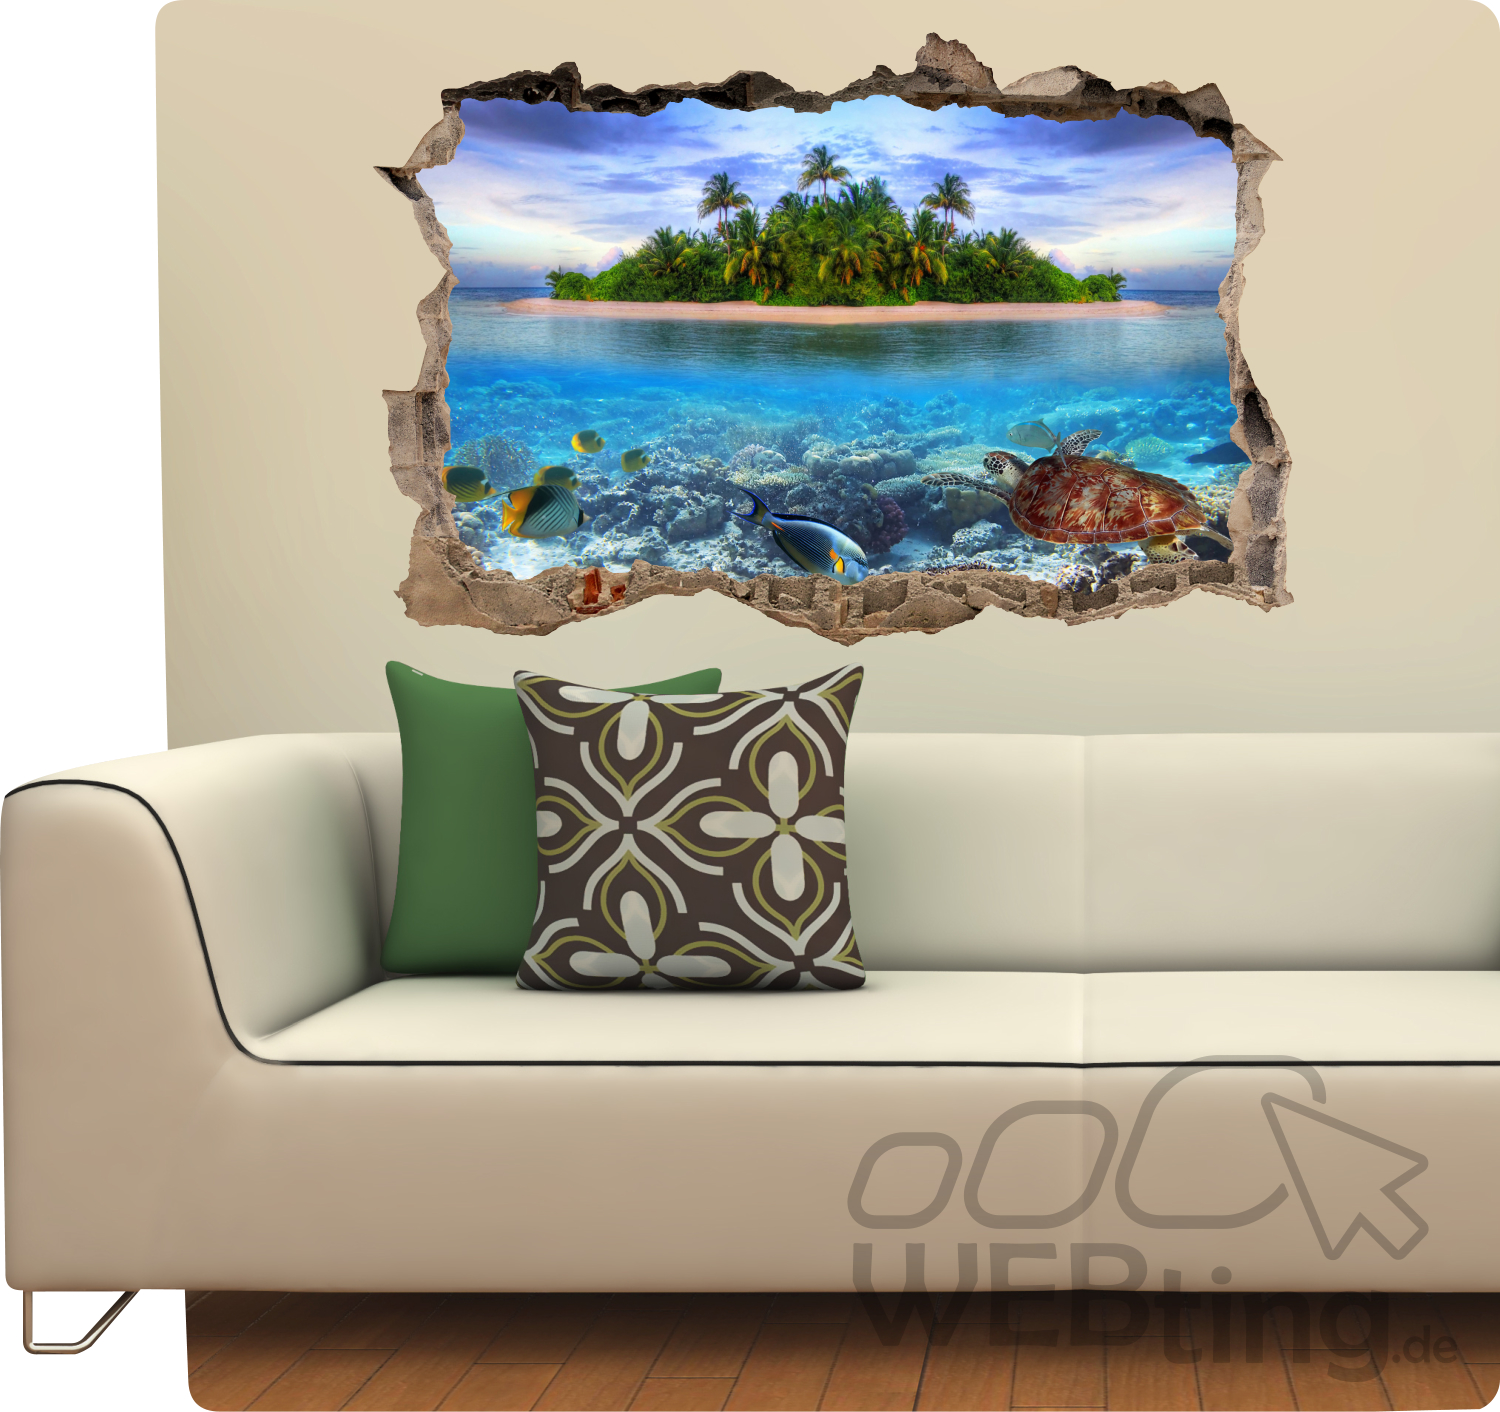 mauerdurchbruch insel sand aufkleber wandtattoo sticker fototapete kleber. Black Bedroom Furniture Sets. Home Design Ideas